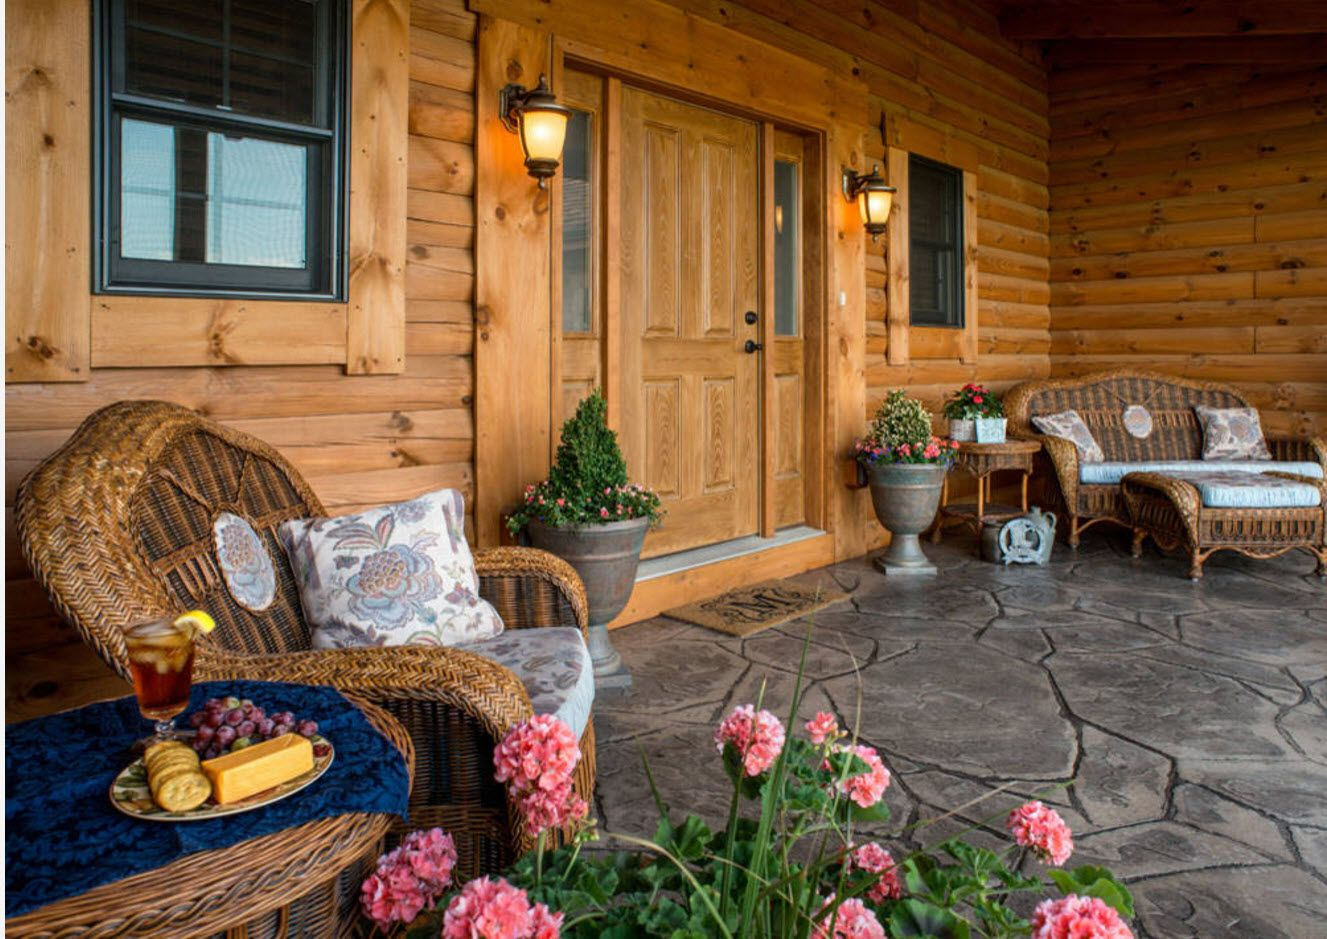 Country House Porch Decoration & Design Ideas. Fully wooden trimmed facade in deep rustic style